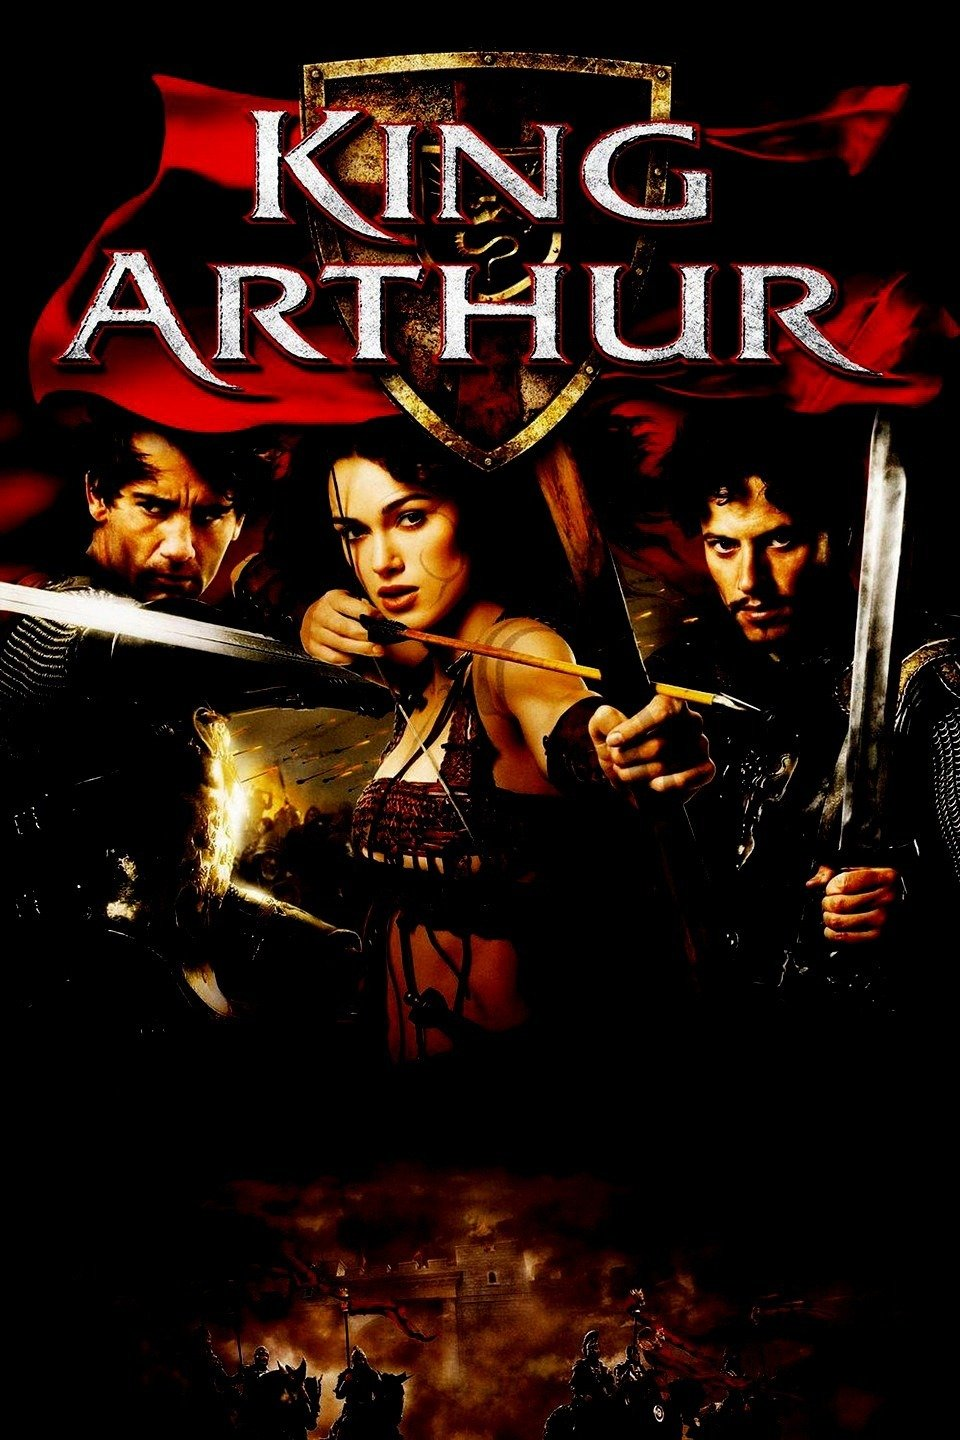 King Arthur (2004) - Directed by: Antoine FuquaStarring: Clive Owen, Keira Knightley, Stellan SkarsgardRated: (Reviewing Director's Cut- Suggested Rating R)Running Time: 2 h 22 mTMM Score: 3.5 stars out of 5STRENGTHS: Pacing, Action, Characters, Moral DilemmaWEAKNESSES: Cliche Storyline, Acting, Some Writing